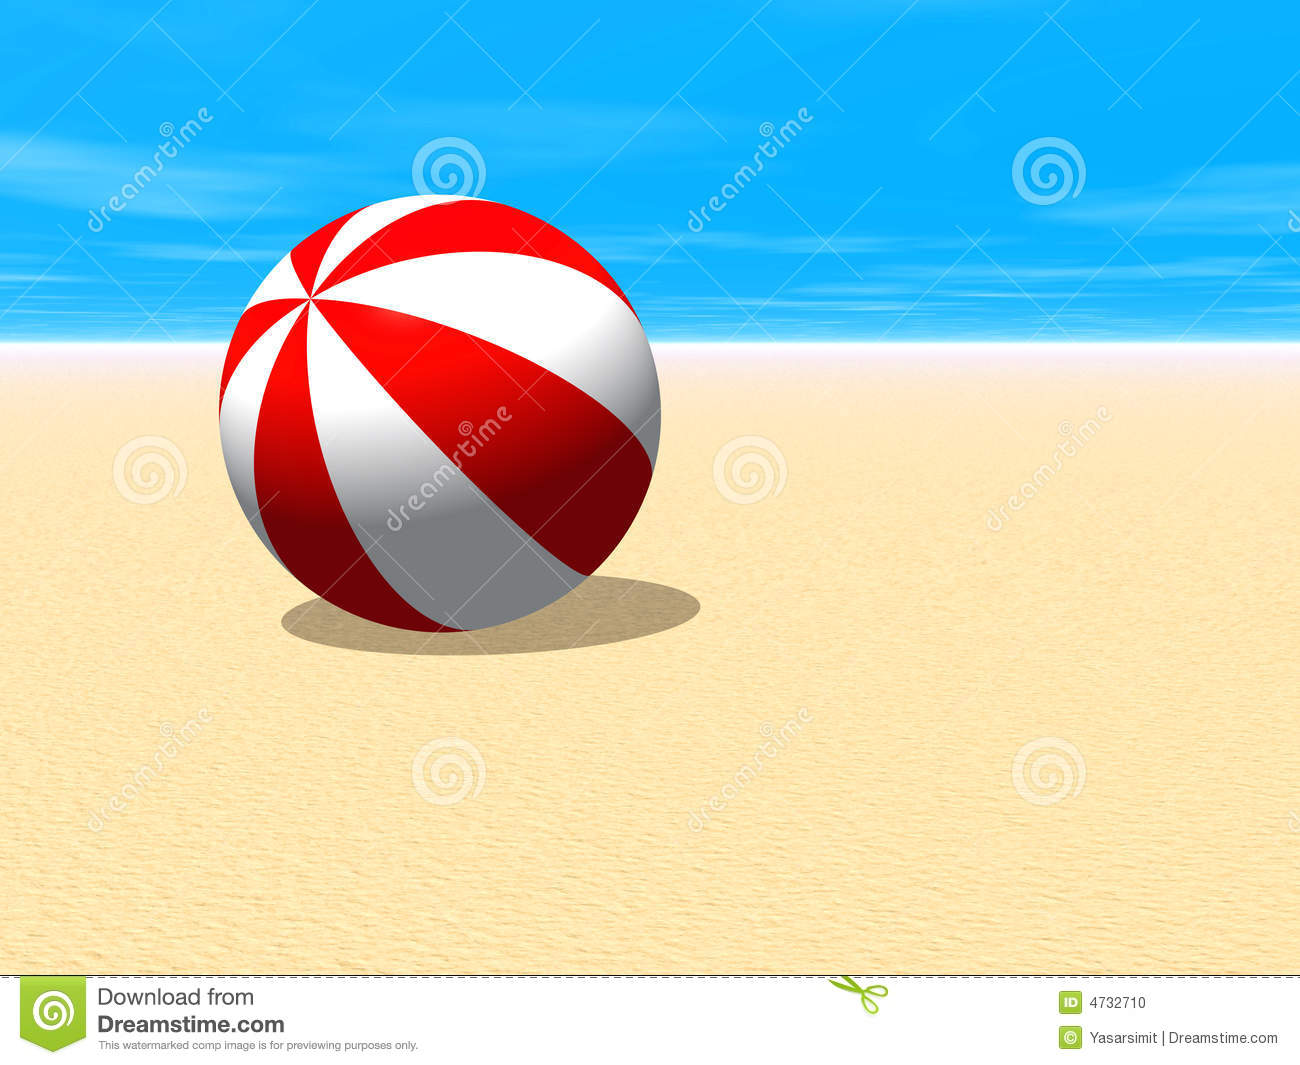 Beach ball in sand Ocean Red And White Beach Ball Pinterest Red And White Beach Ball Stock Illustration Illustration Of